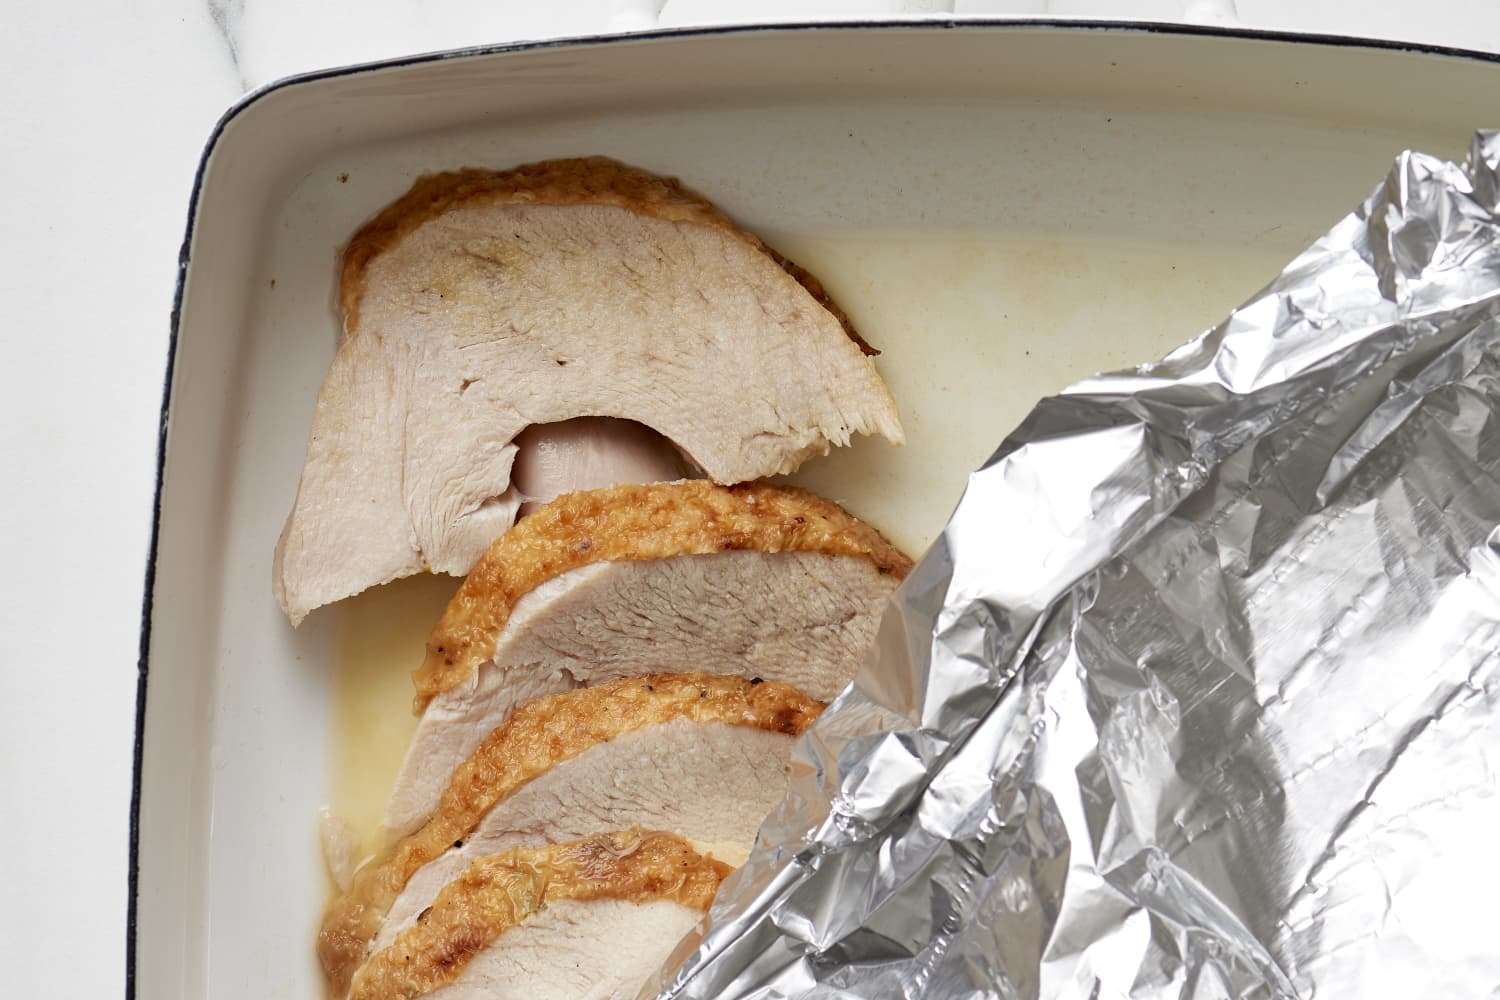 The Very Best, Easy Method for Reheating Leftover Turkey